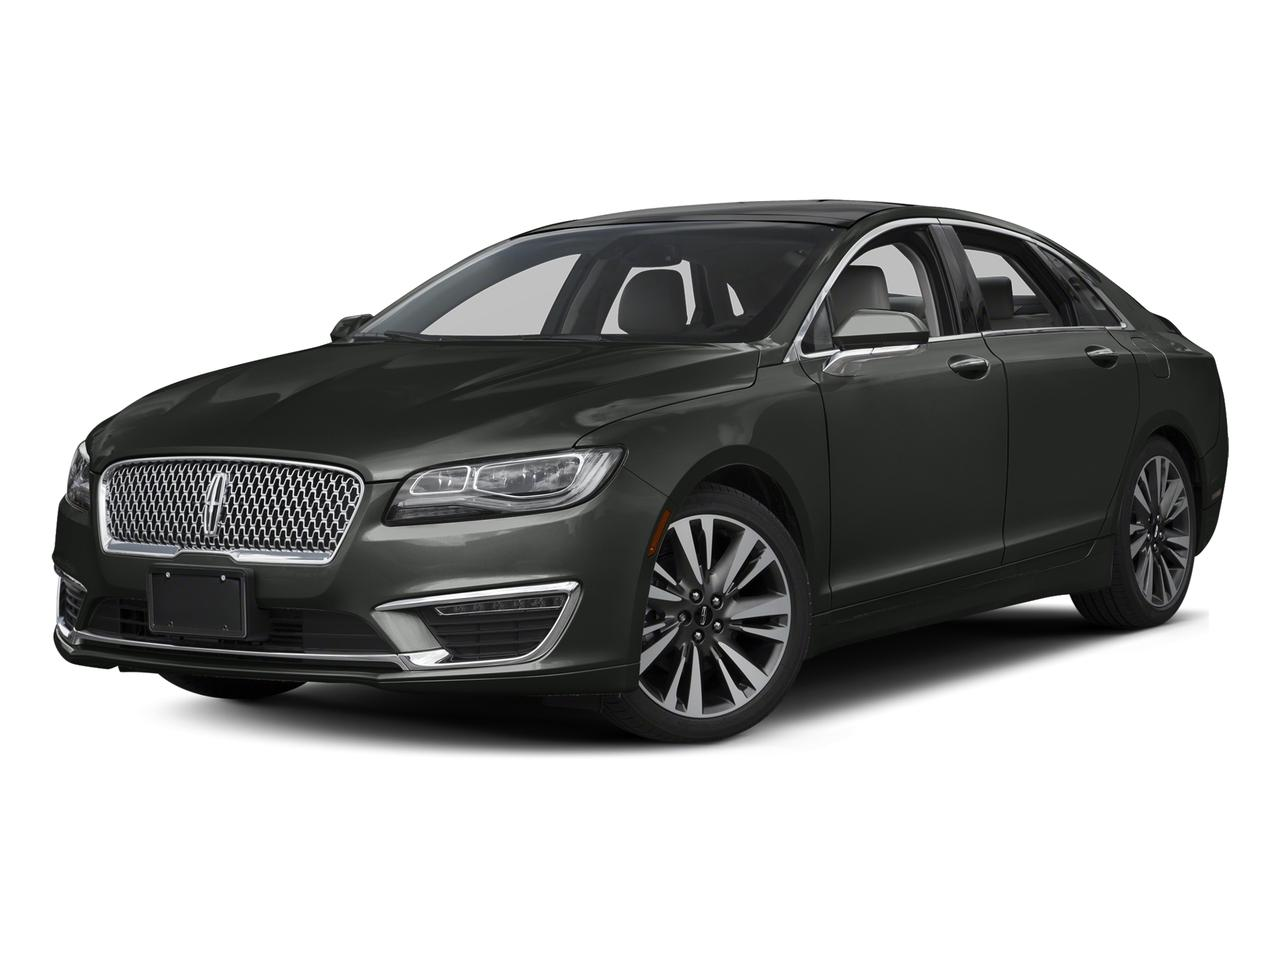 2017 LINCOLN MKZ Vehicle Photo in Moon Township, PA 15108